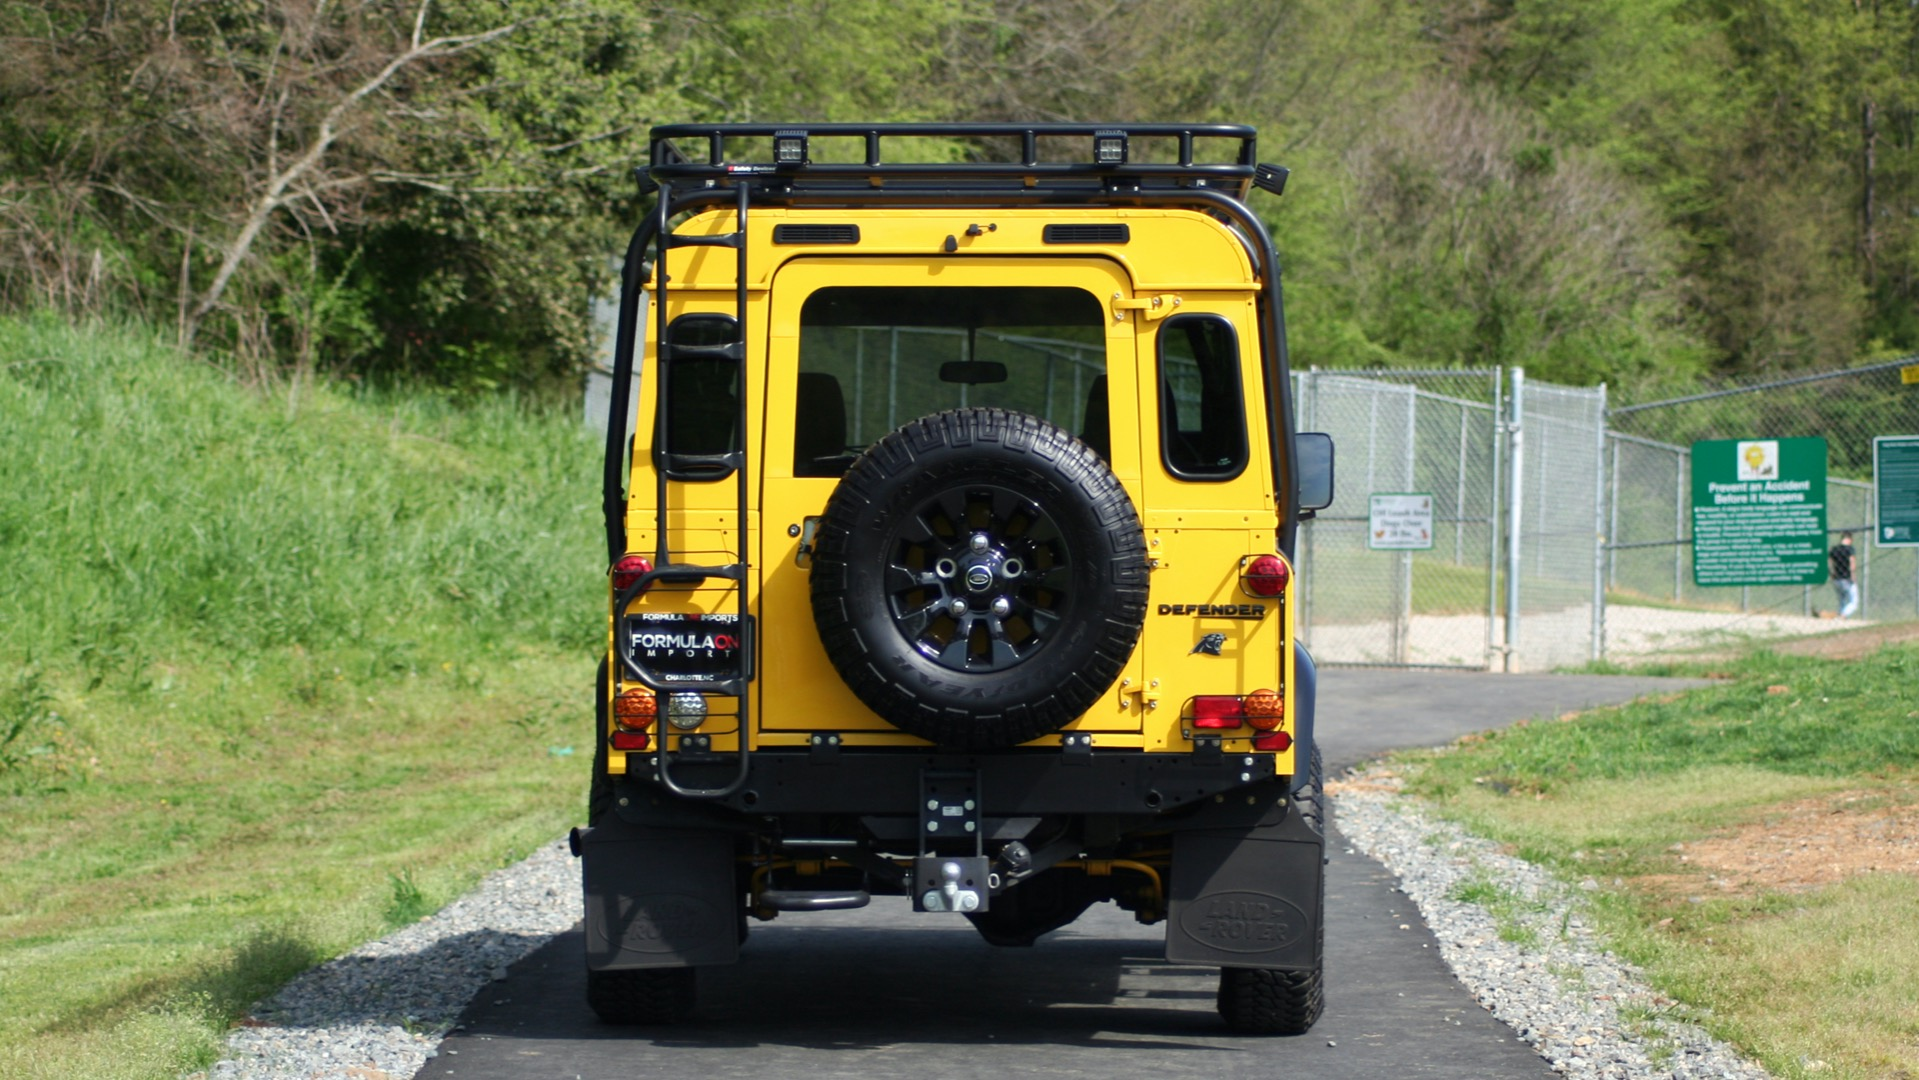 Used 1989 Land Rover Defender 110 4x4 Custom / Fully Restored / Fuel Injected V8 / 5-Spd Man for sale $60,000 at Formula Imports in Charlotte NC 28227 8